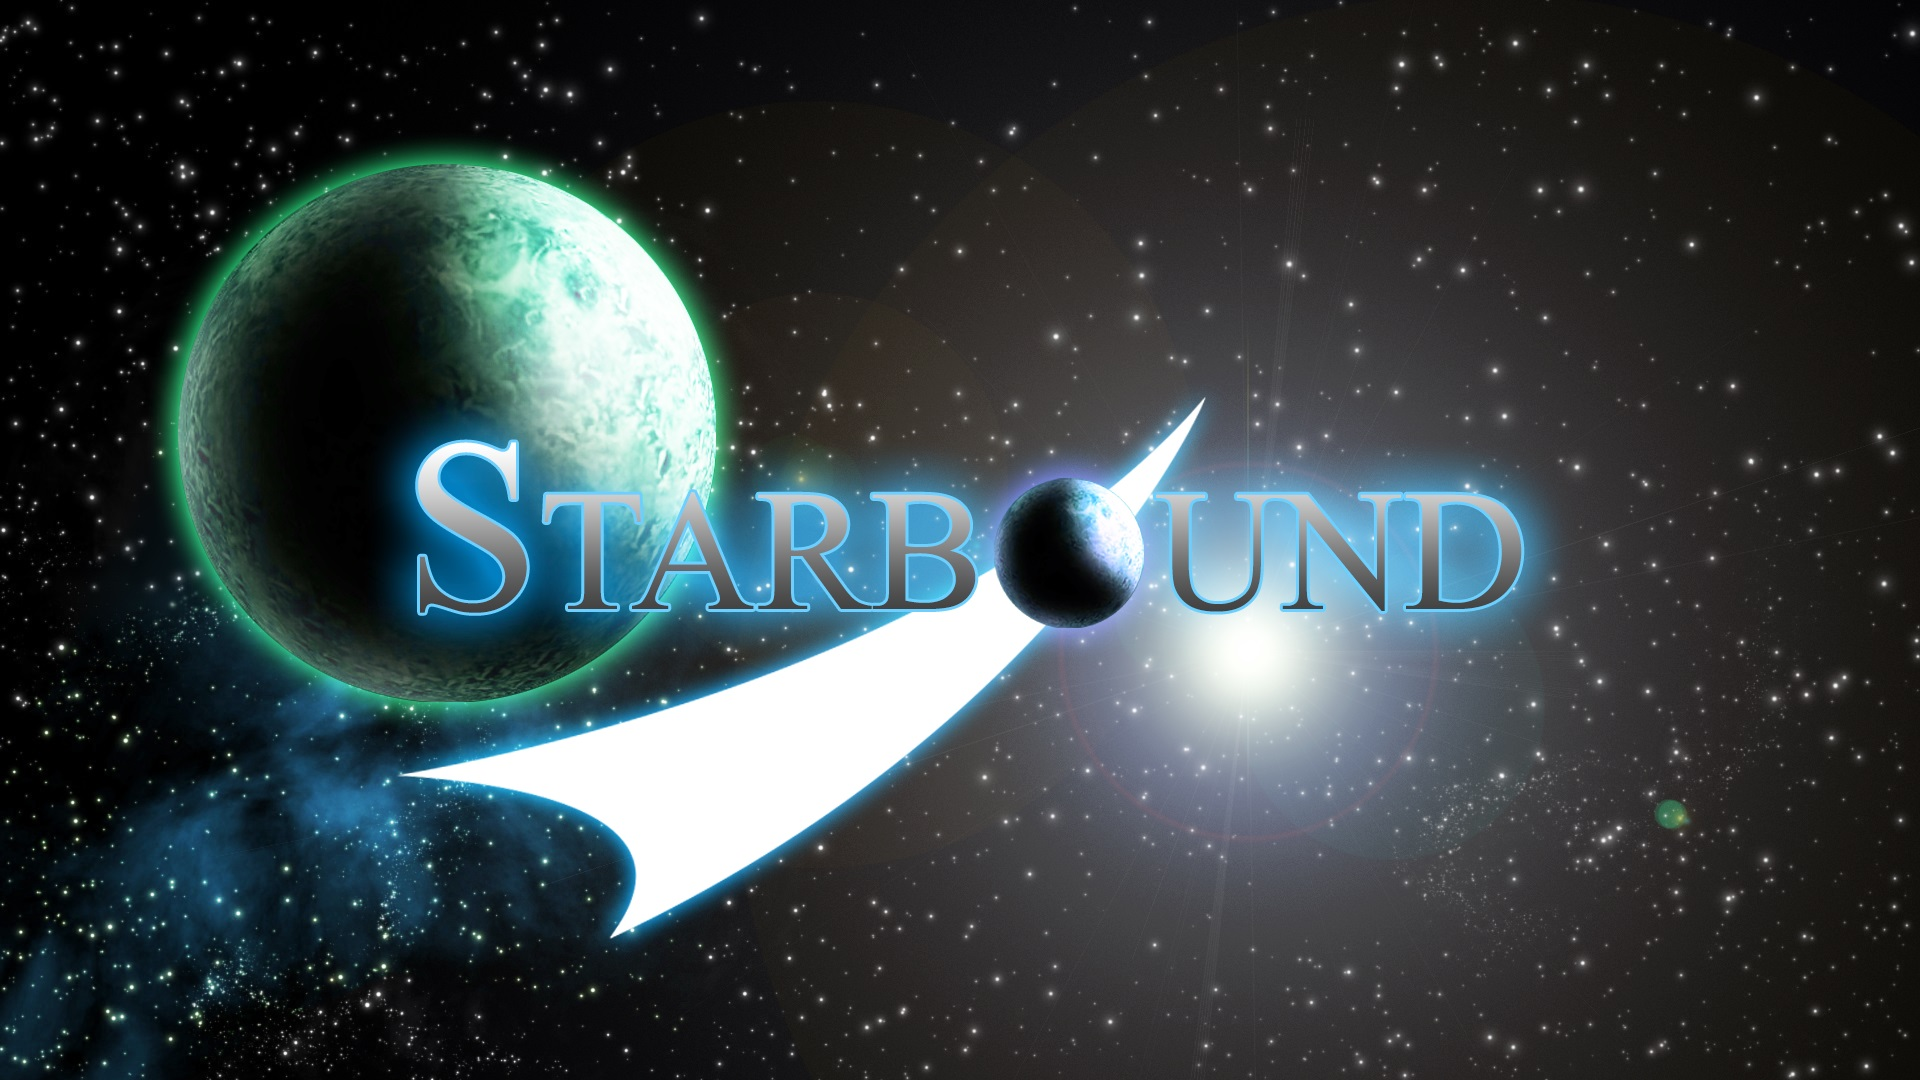 Starbound wallpaper 1